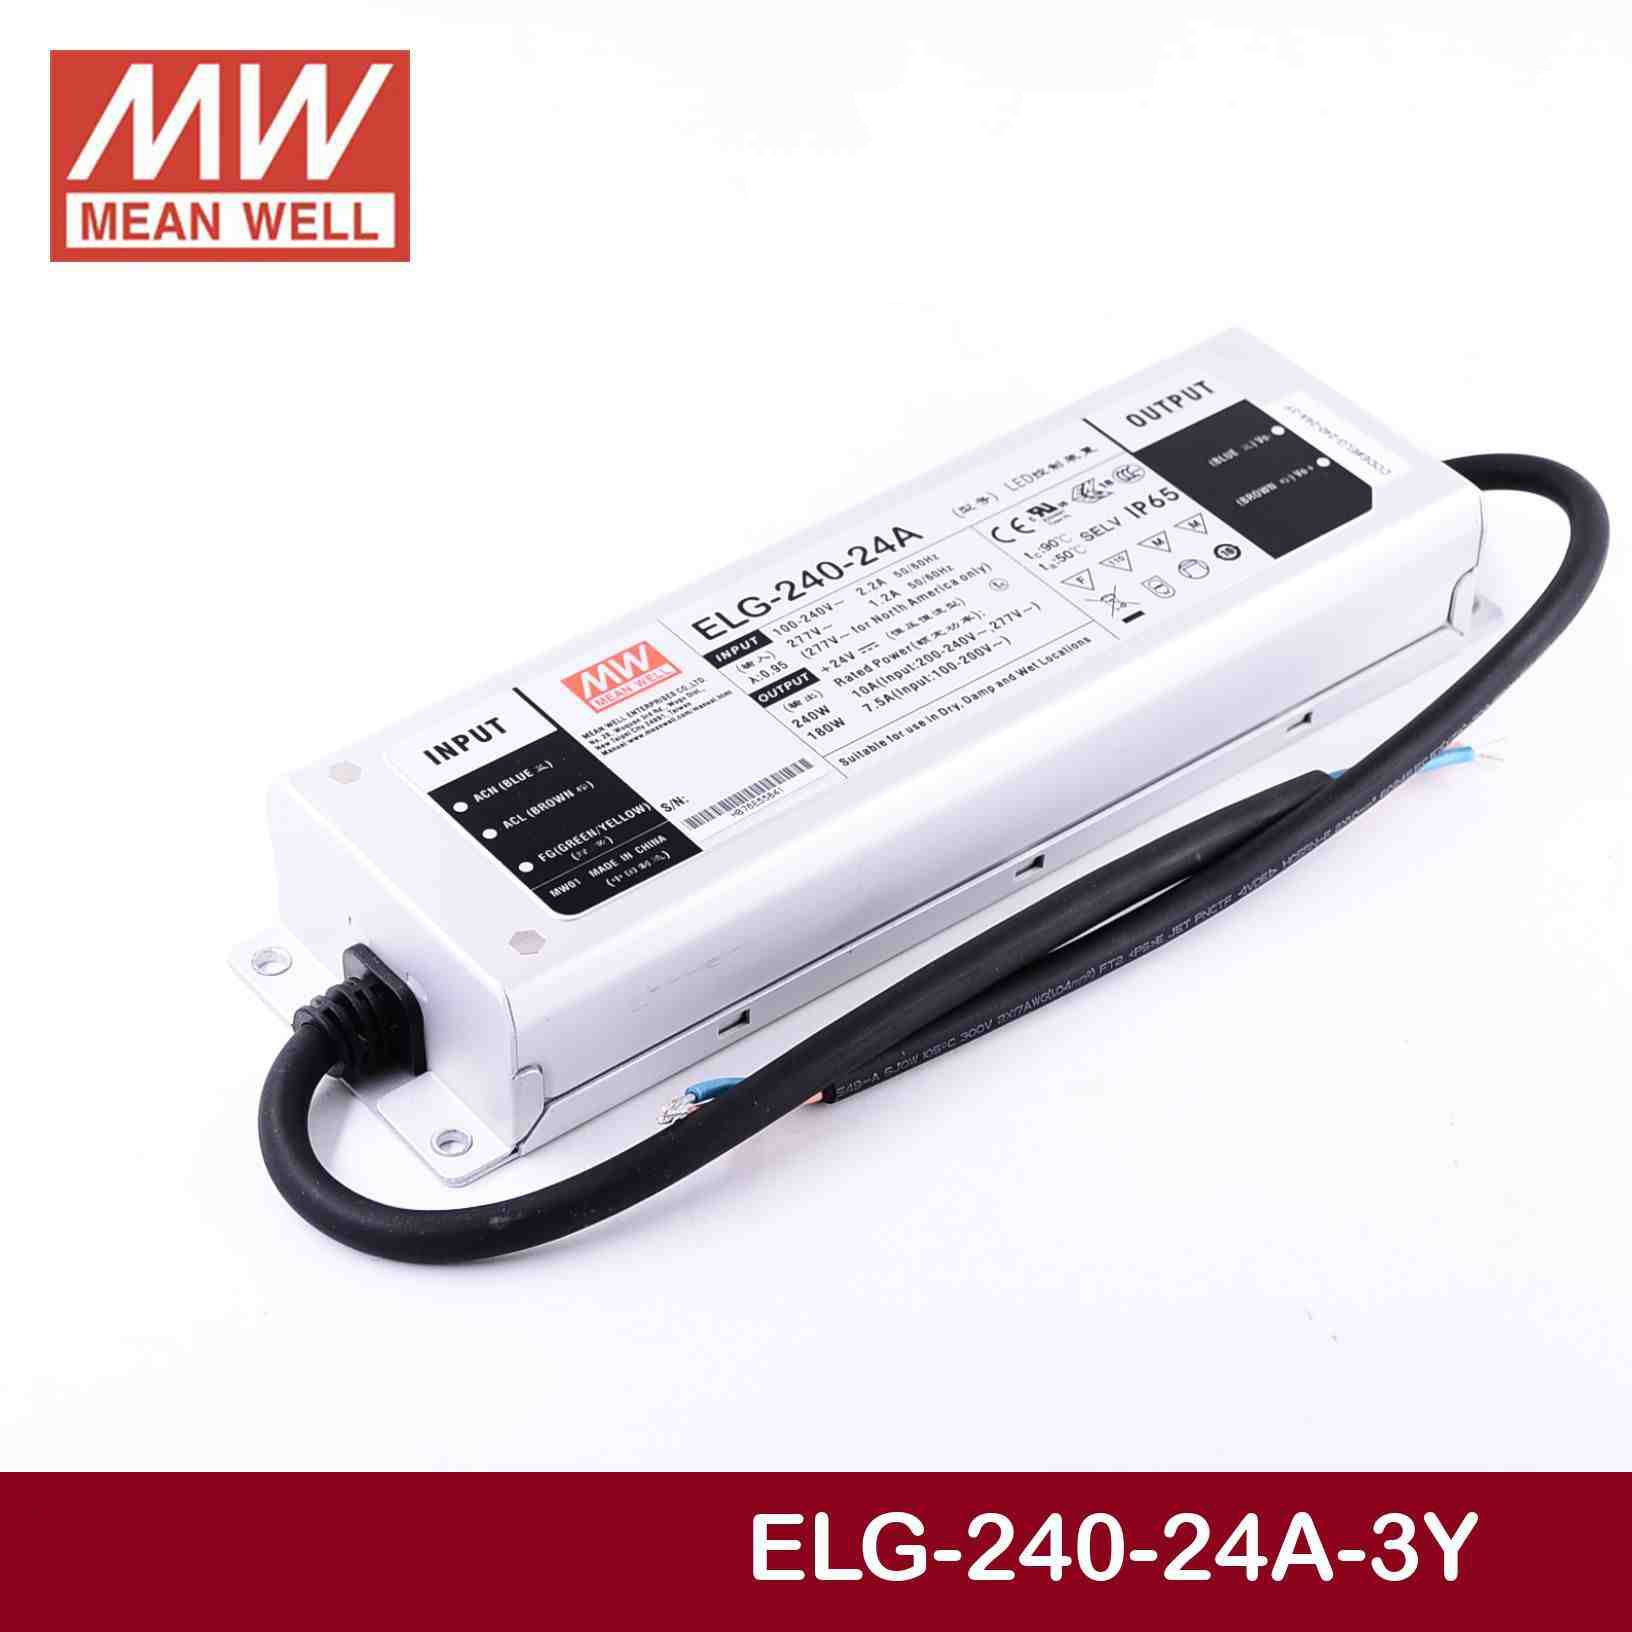 (Only 11.11)ELG-240-36A (2Pcs) Taiwan Meanwell 240W36V waterproof power LED street lighting adjustable current 6.67A(Only 11.11)ELG-240-36A (2Pcs) Taiwan Meanwell 240W36V waterproof power LED street lighting adjustable current 6.67A